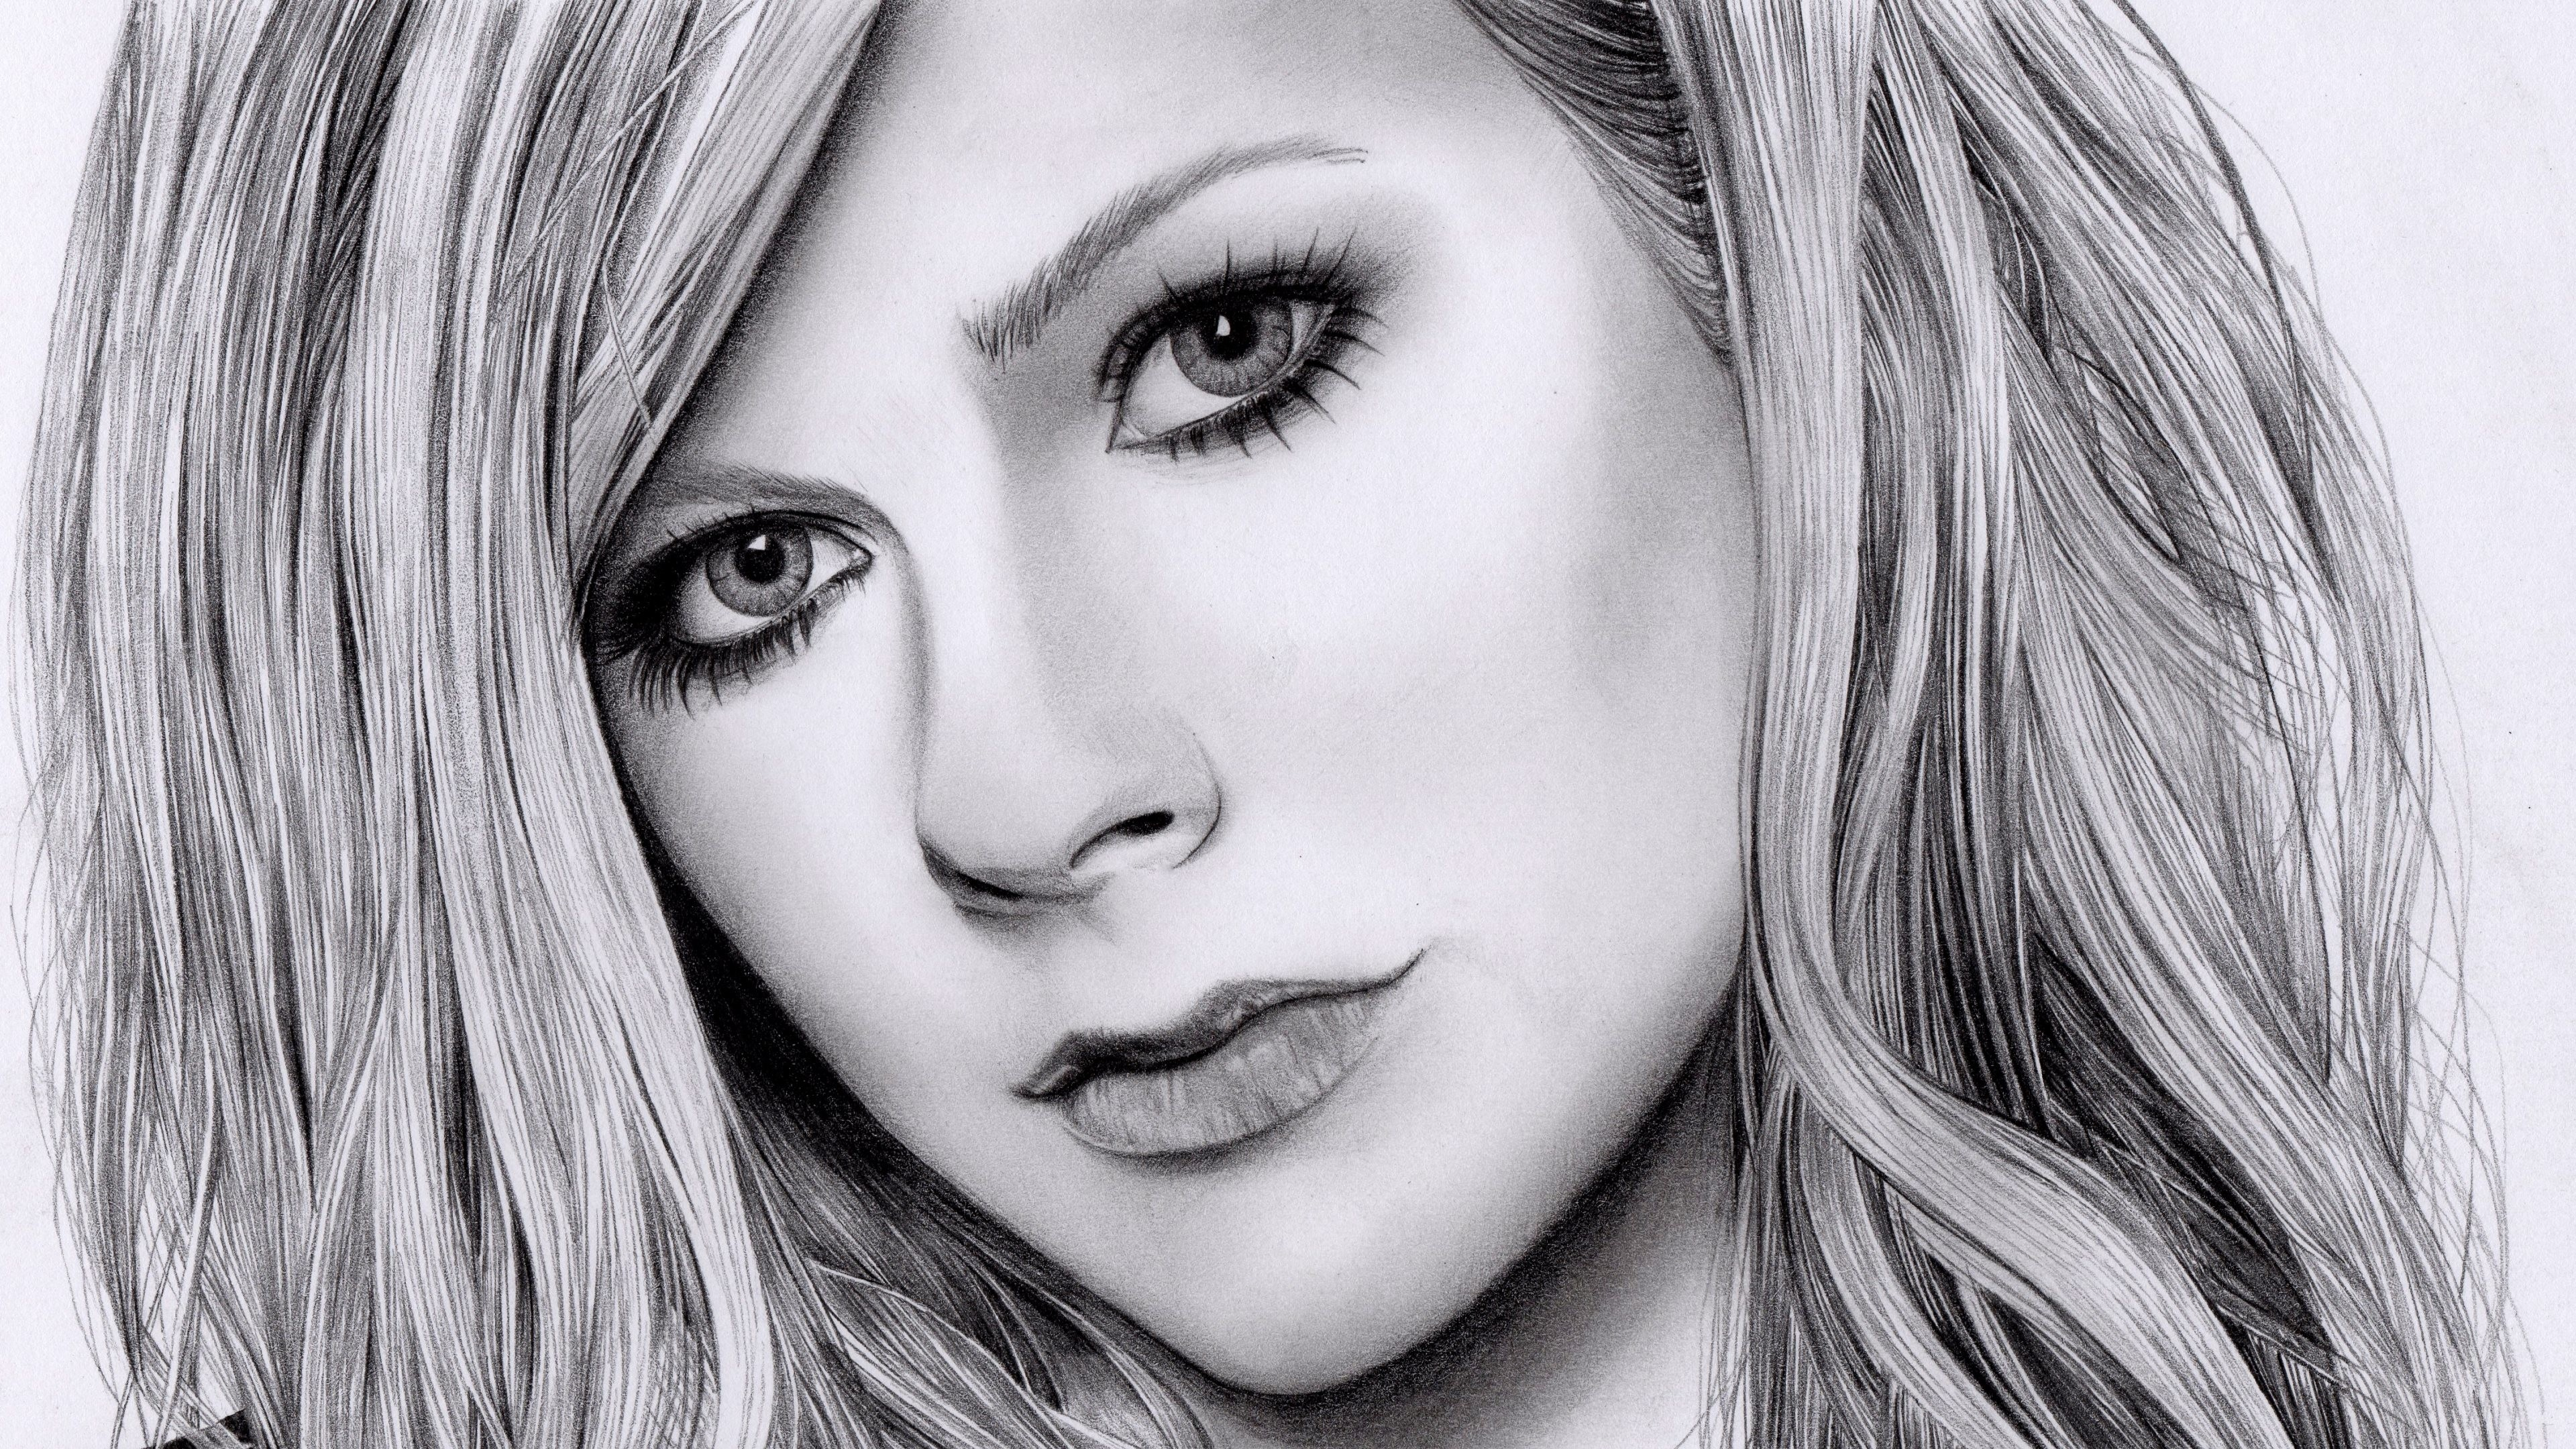 3840x2160 Avril Lavigne Wallpapers HD Desktop and Mobile Backgrounds